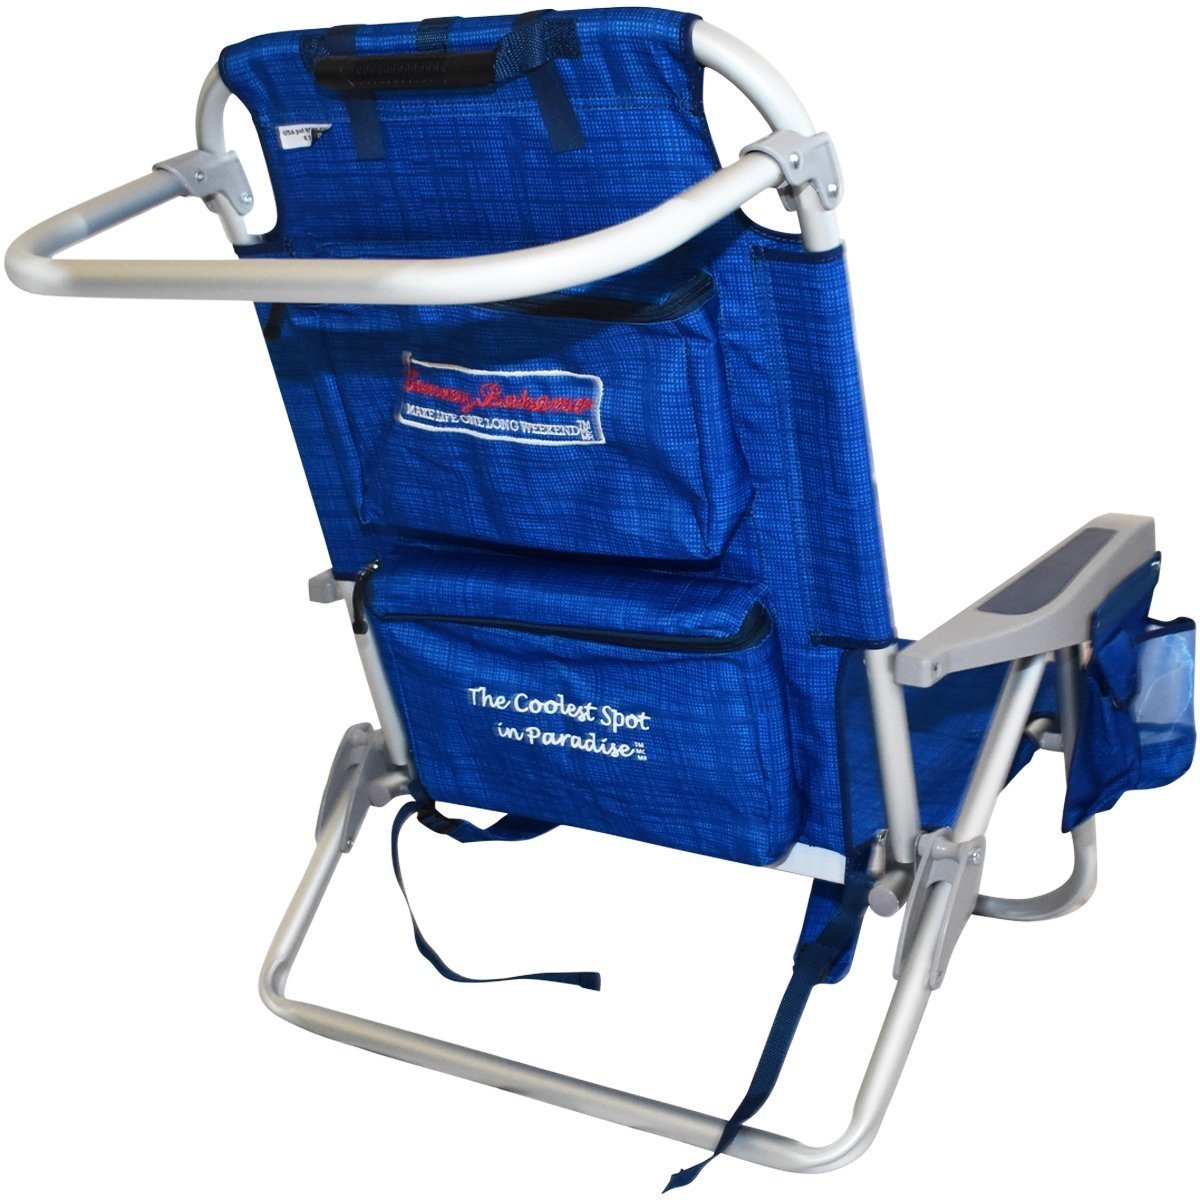 Backpack cooler chair - Amazon Com Tommy Bahama Backpack Cooler Chair Blue Patio Lawn Garden